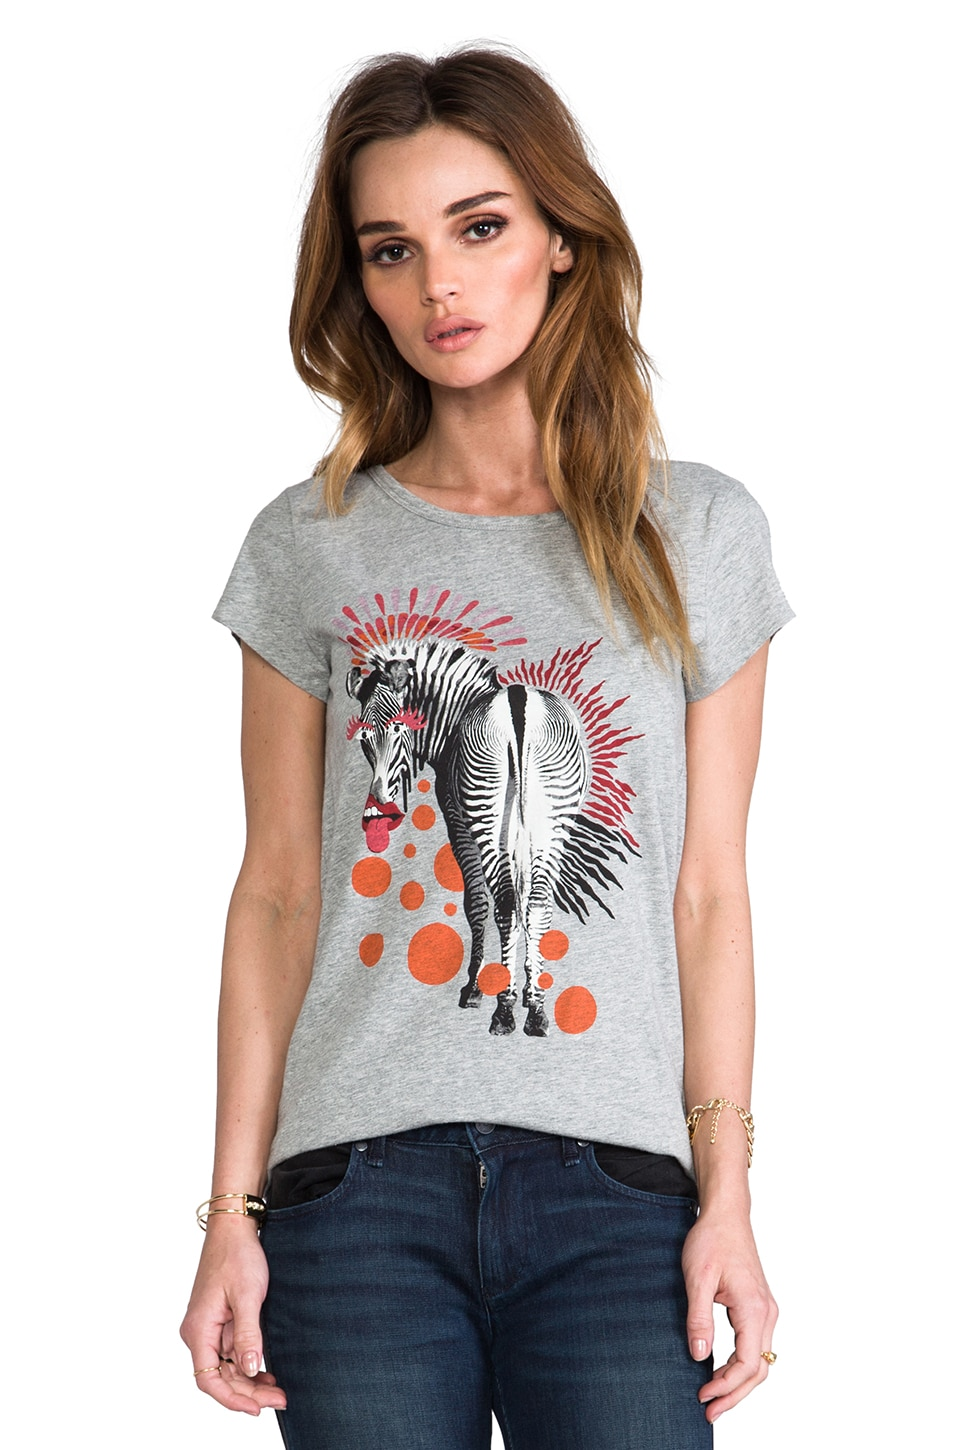 Marc by Marc Jacobs Zebra Printed Tee in Light Grey Melange